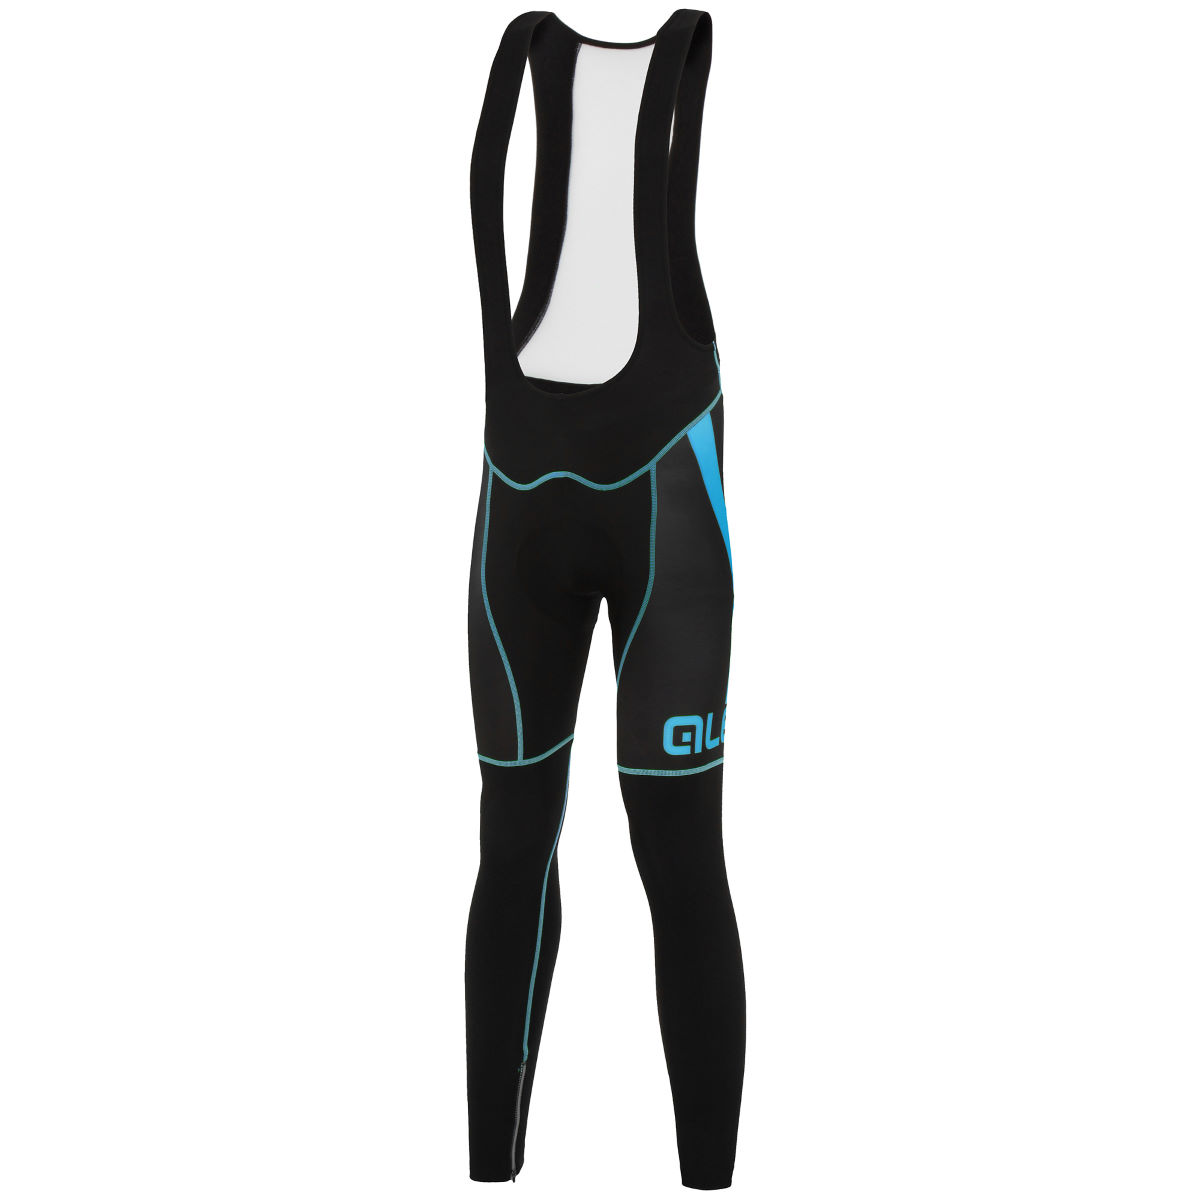 Alé Exclusive Ultra Canale Bib Tights AW16 - Extra Large Black/Blue